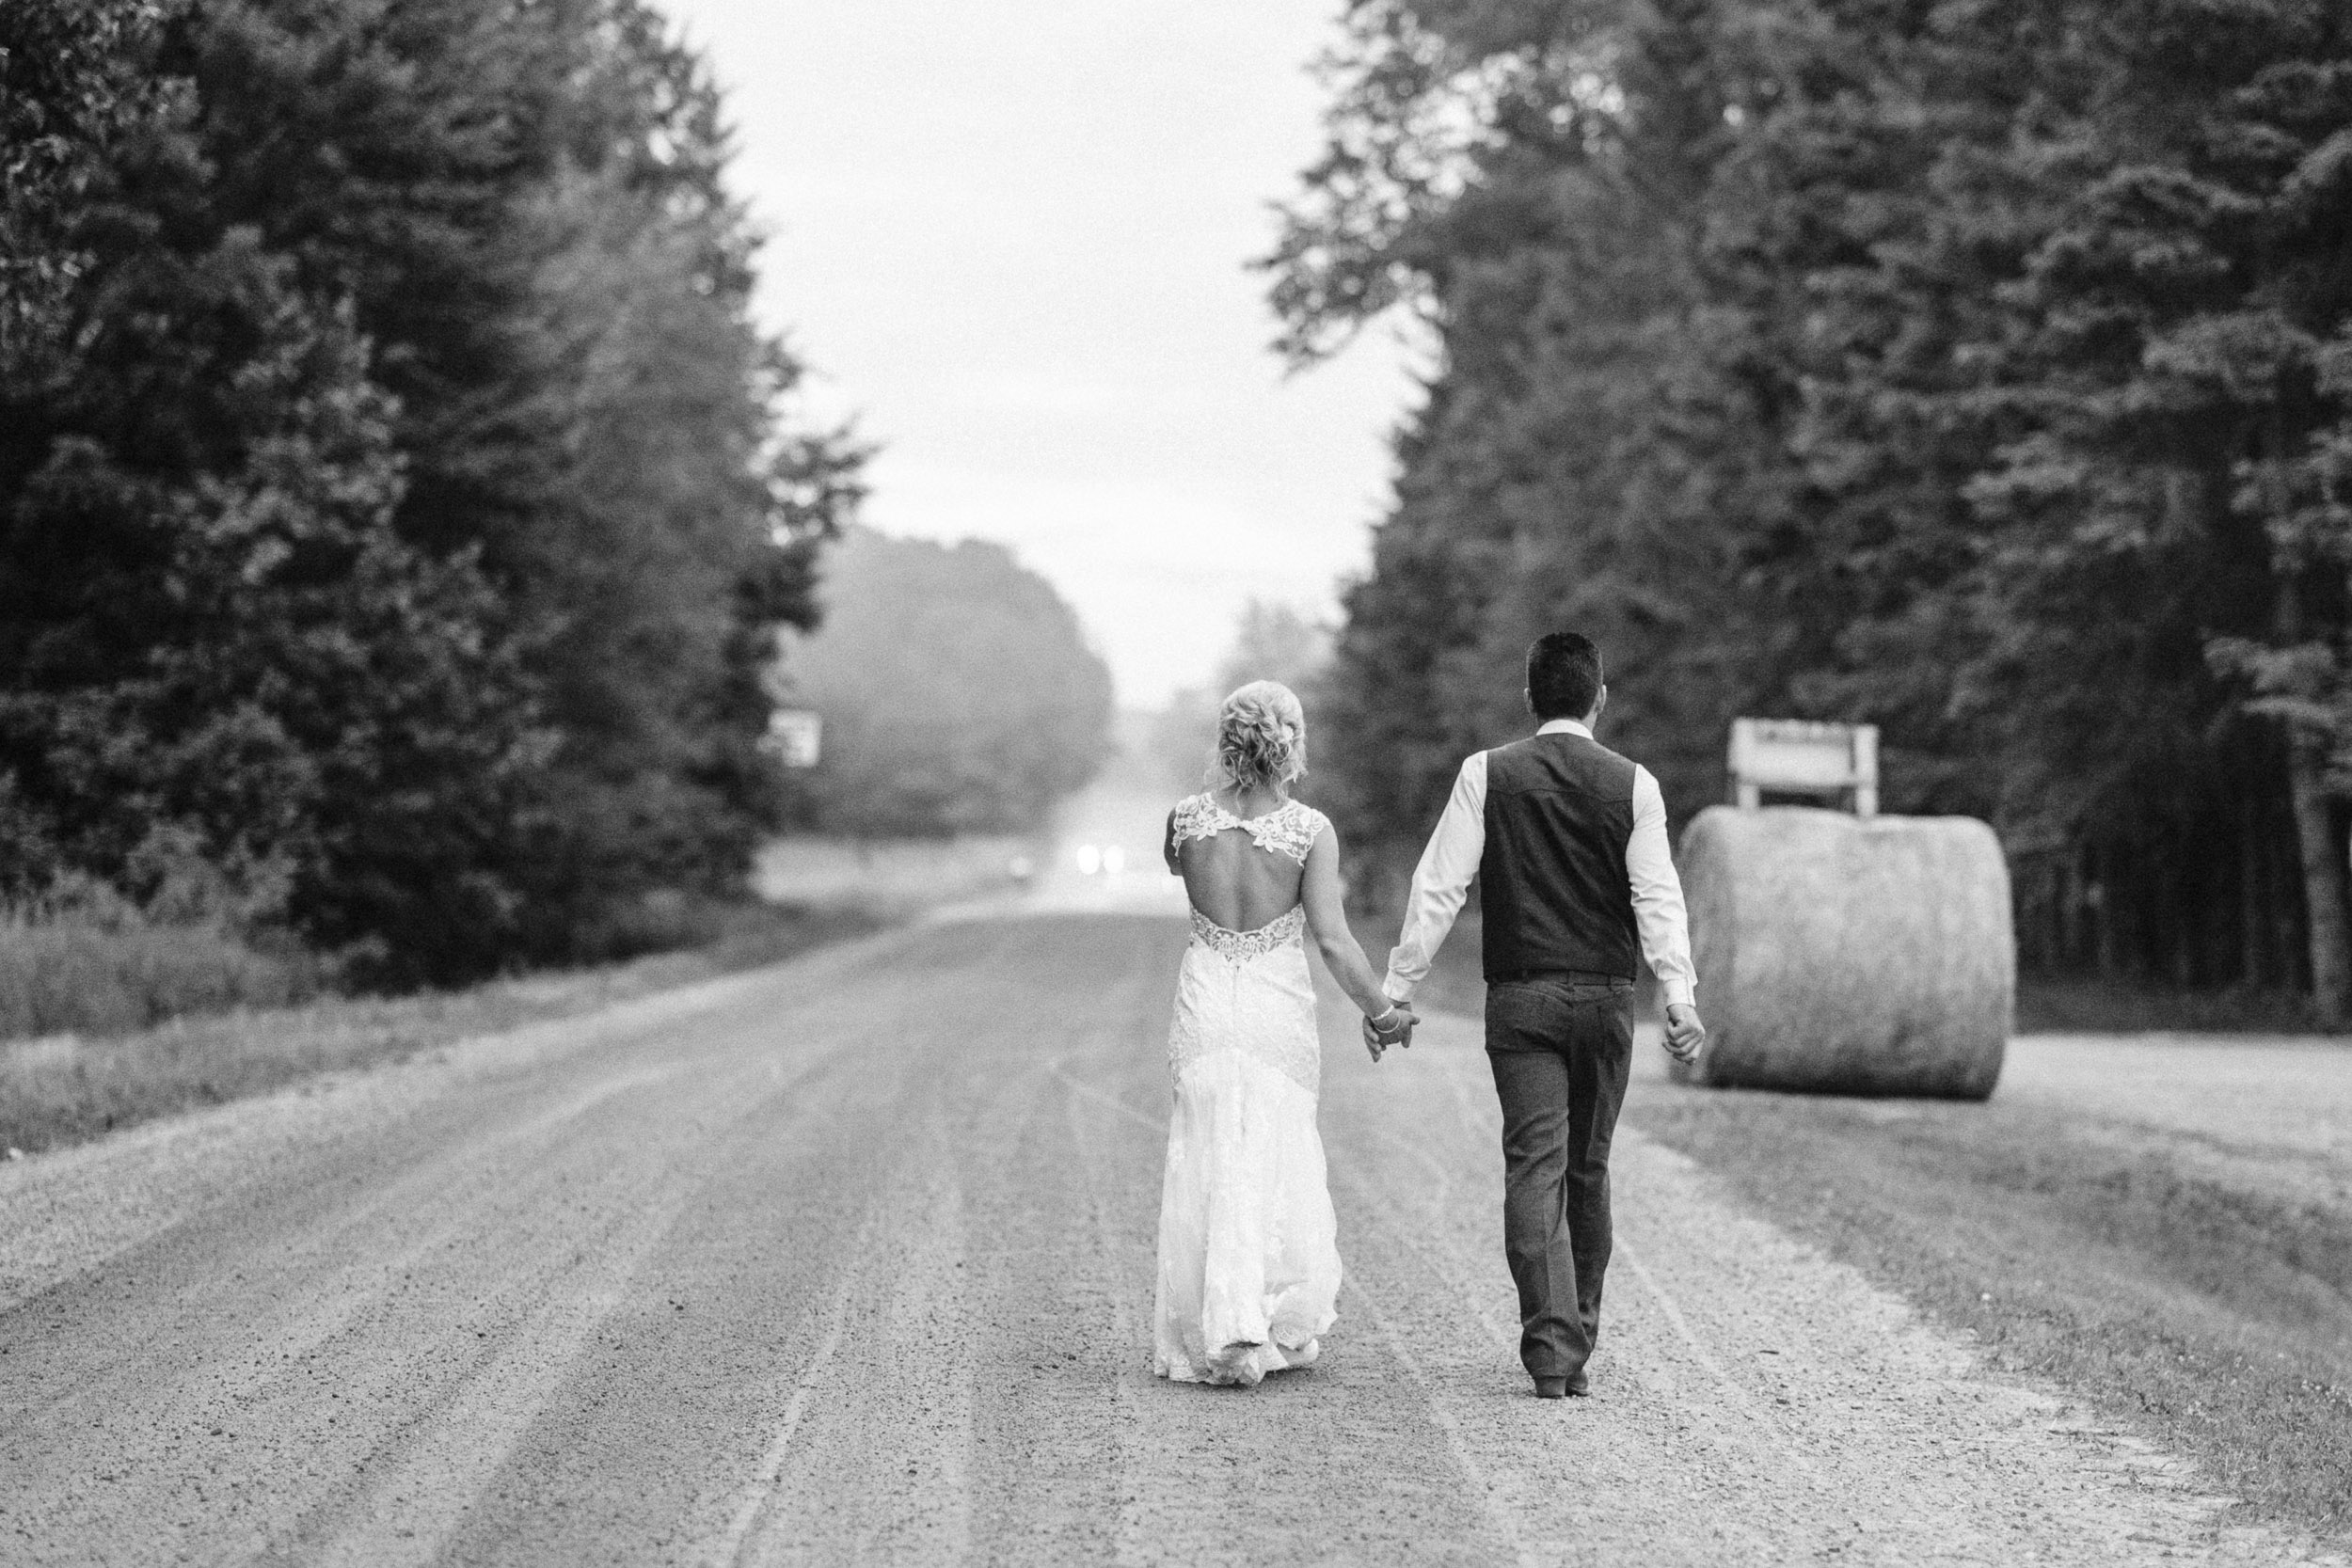 Bride and groom walking down gravel road